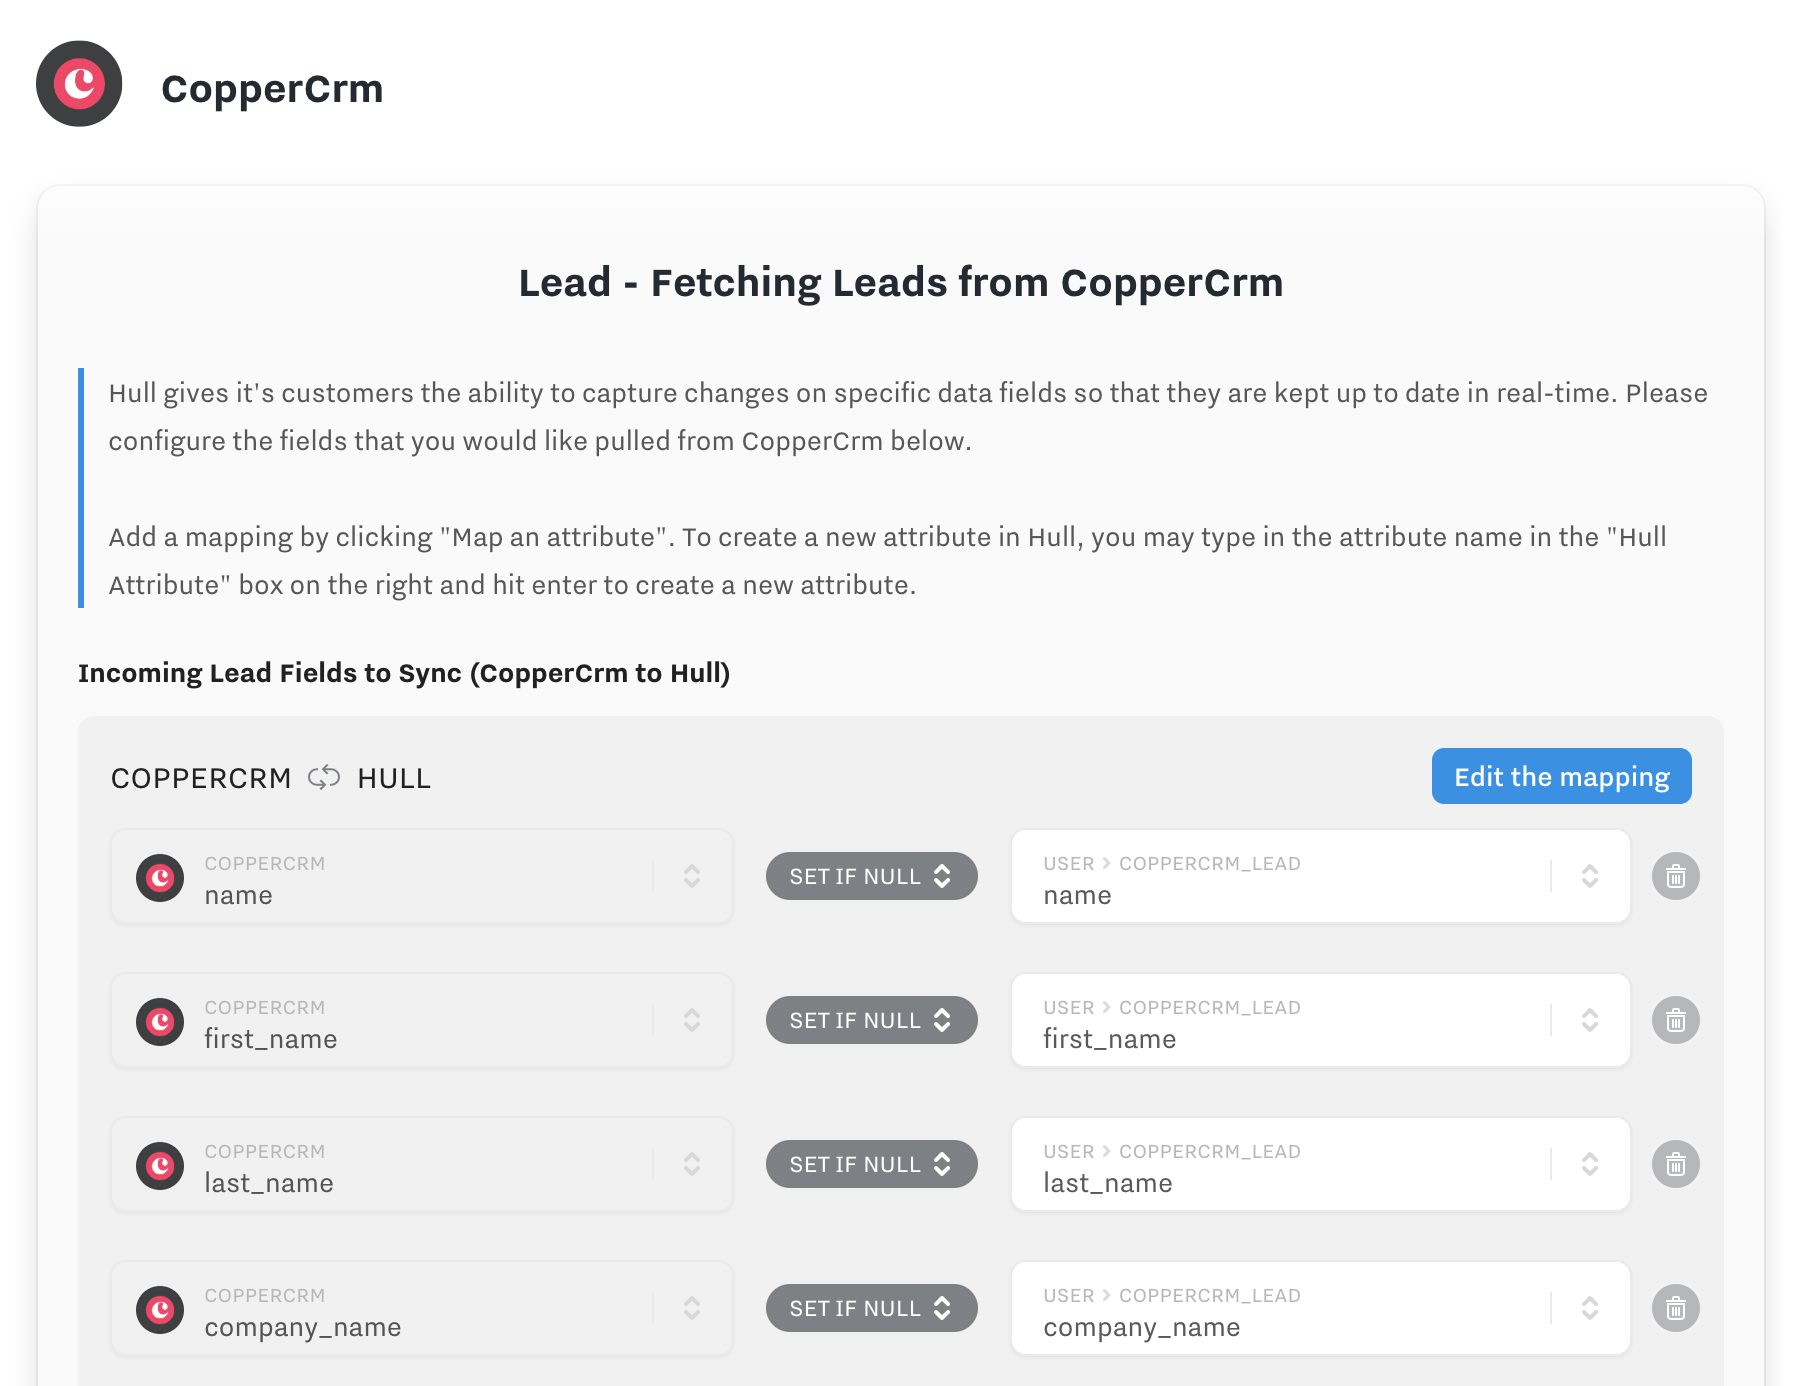 coppercrm lead attributes